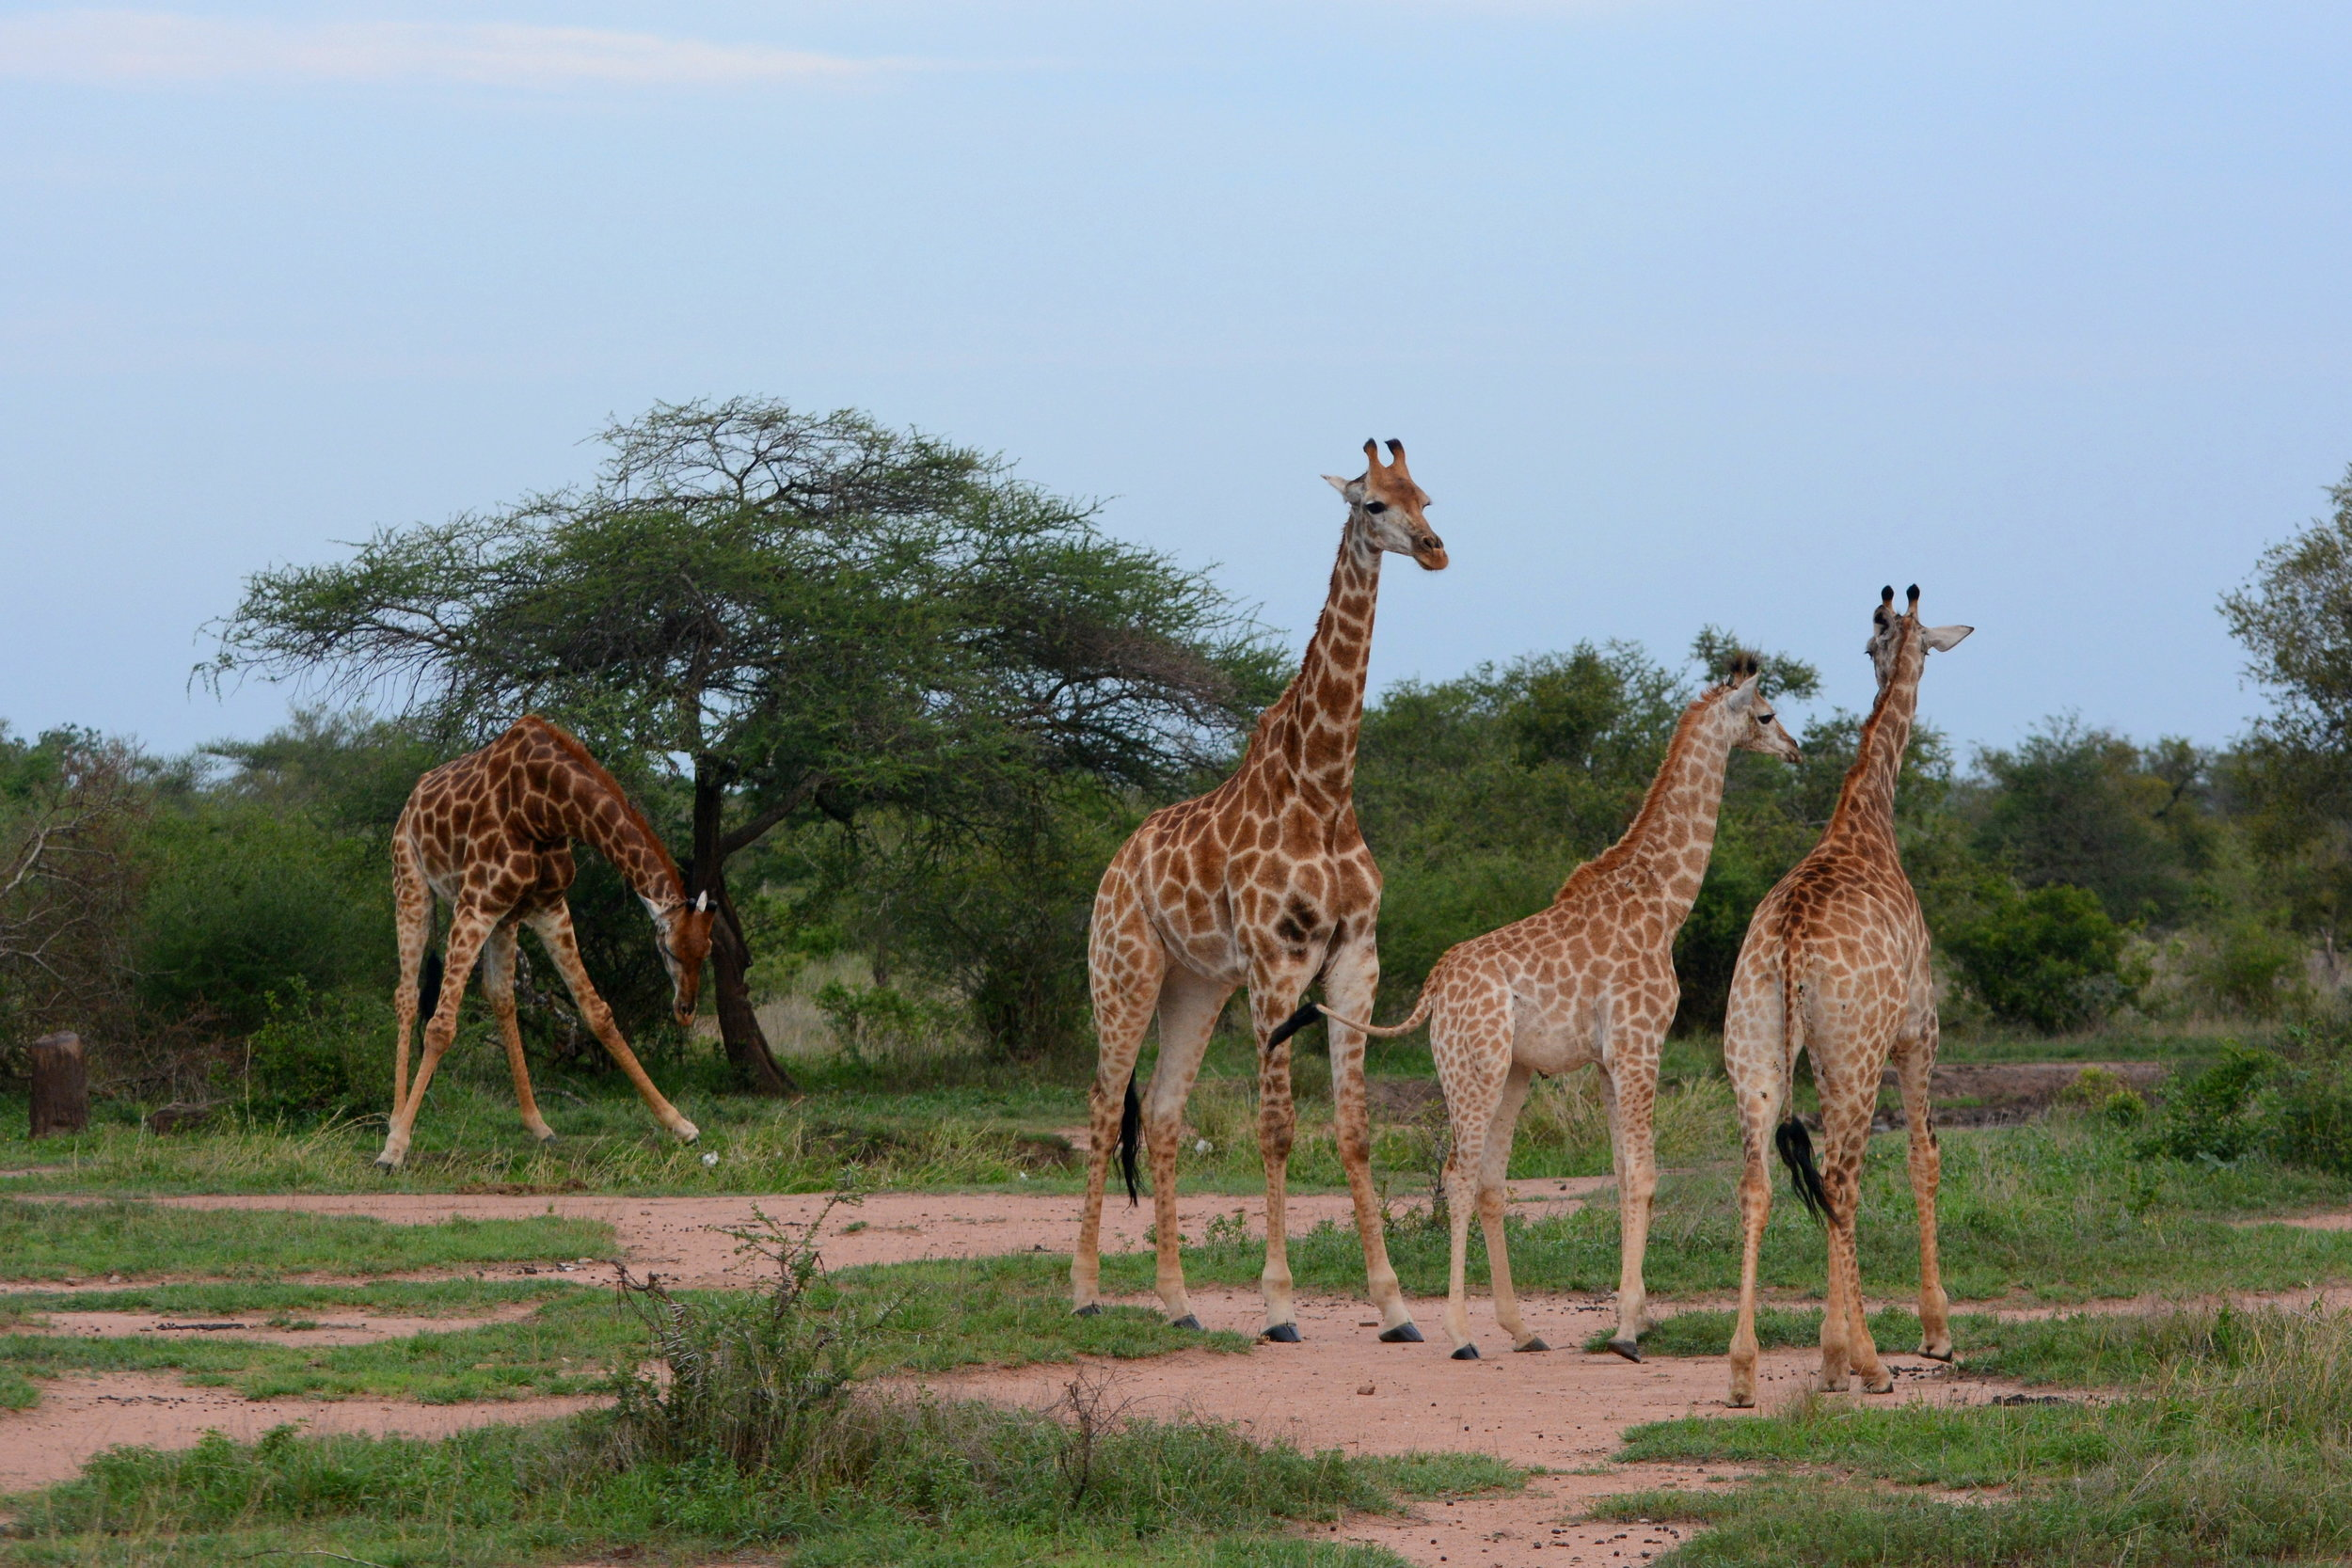 Giraffes_in_Kruger_National_Park_02.JPG